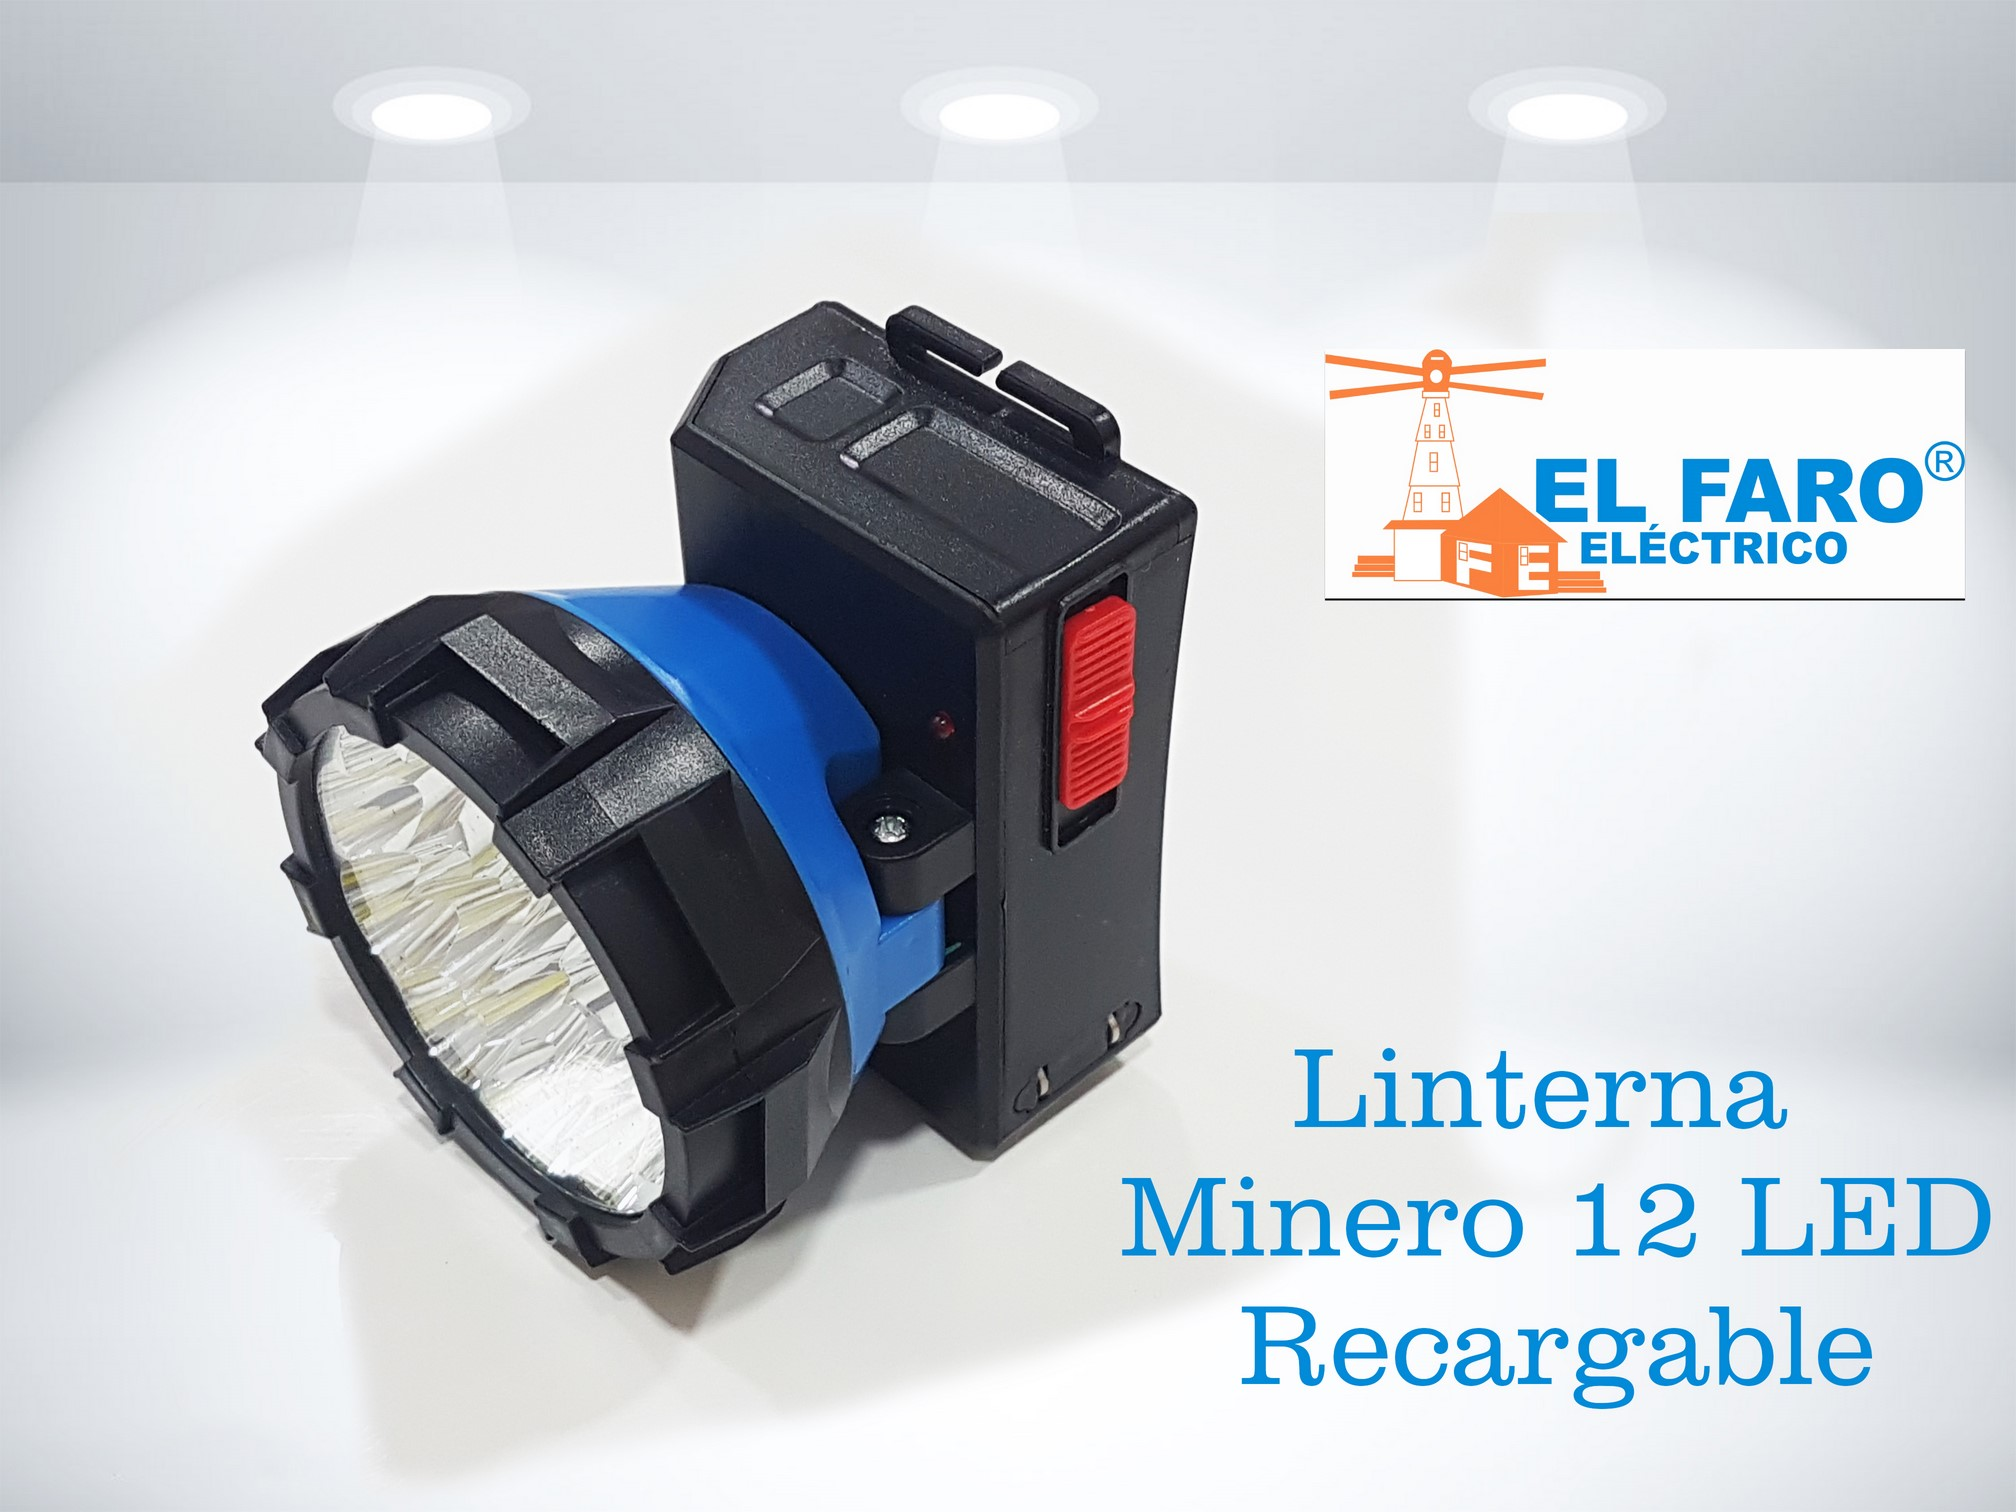 Linterna Minero 12 LED Recargable